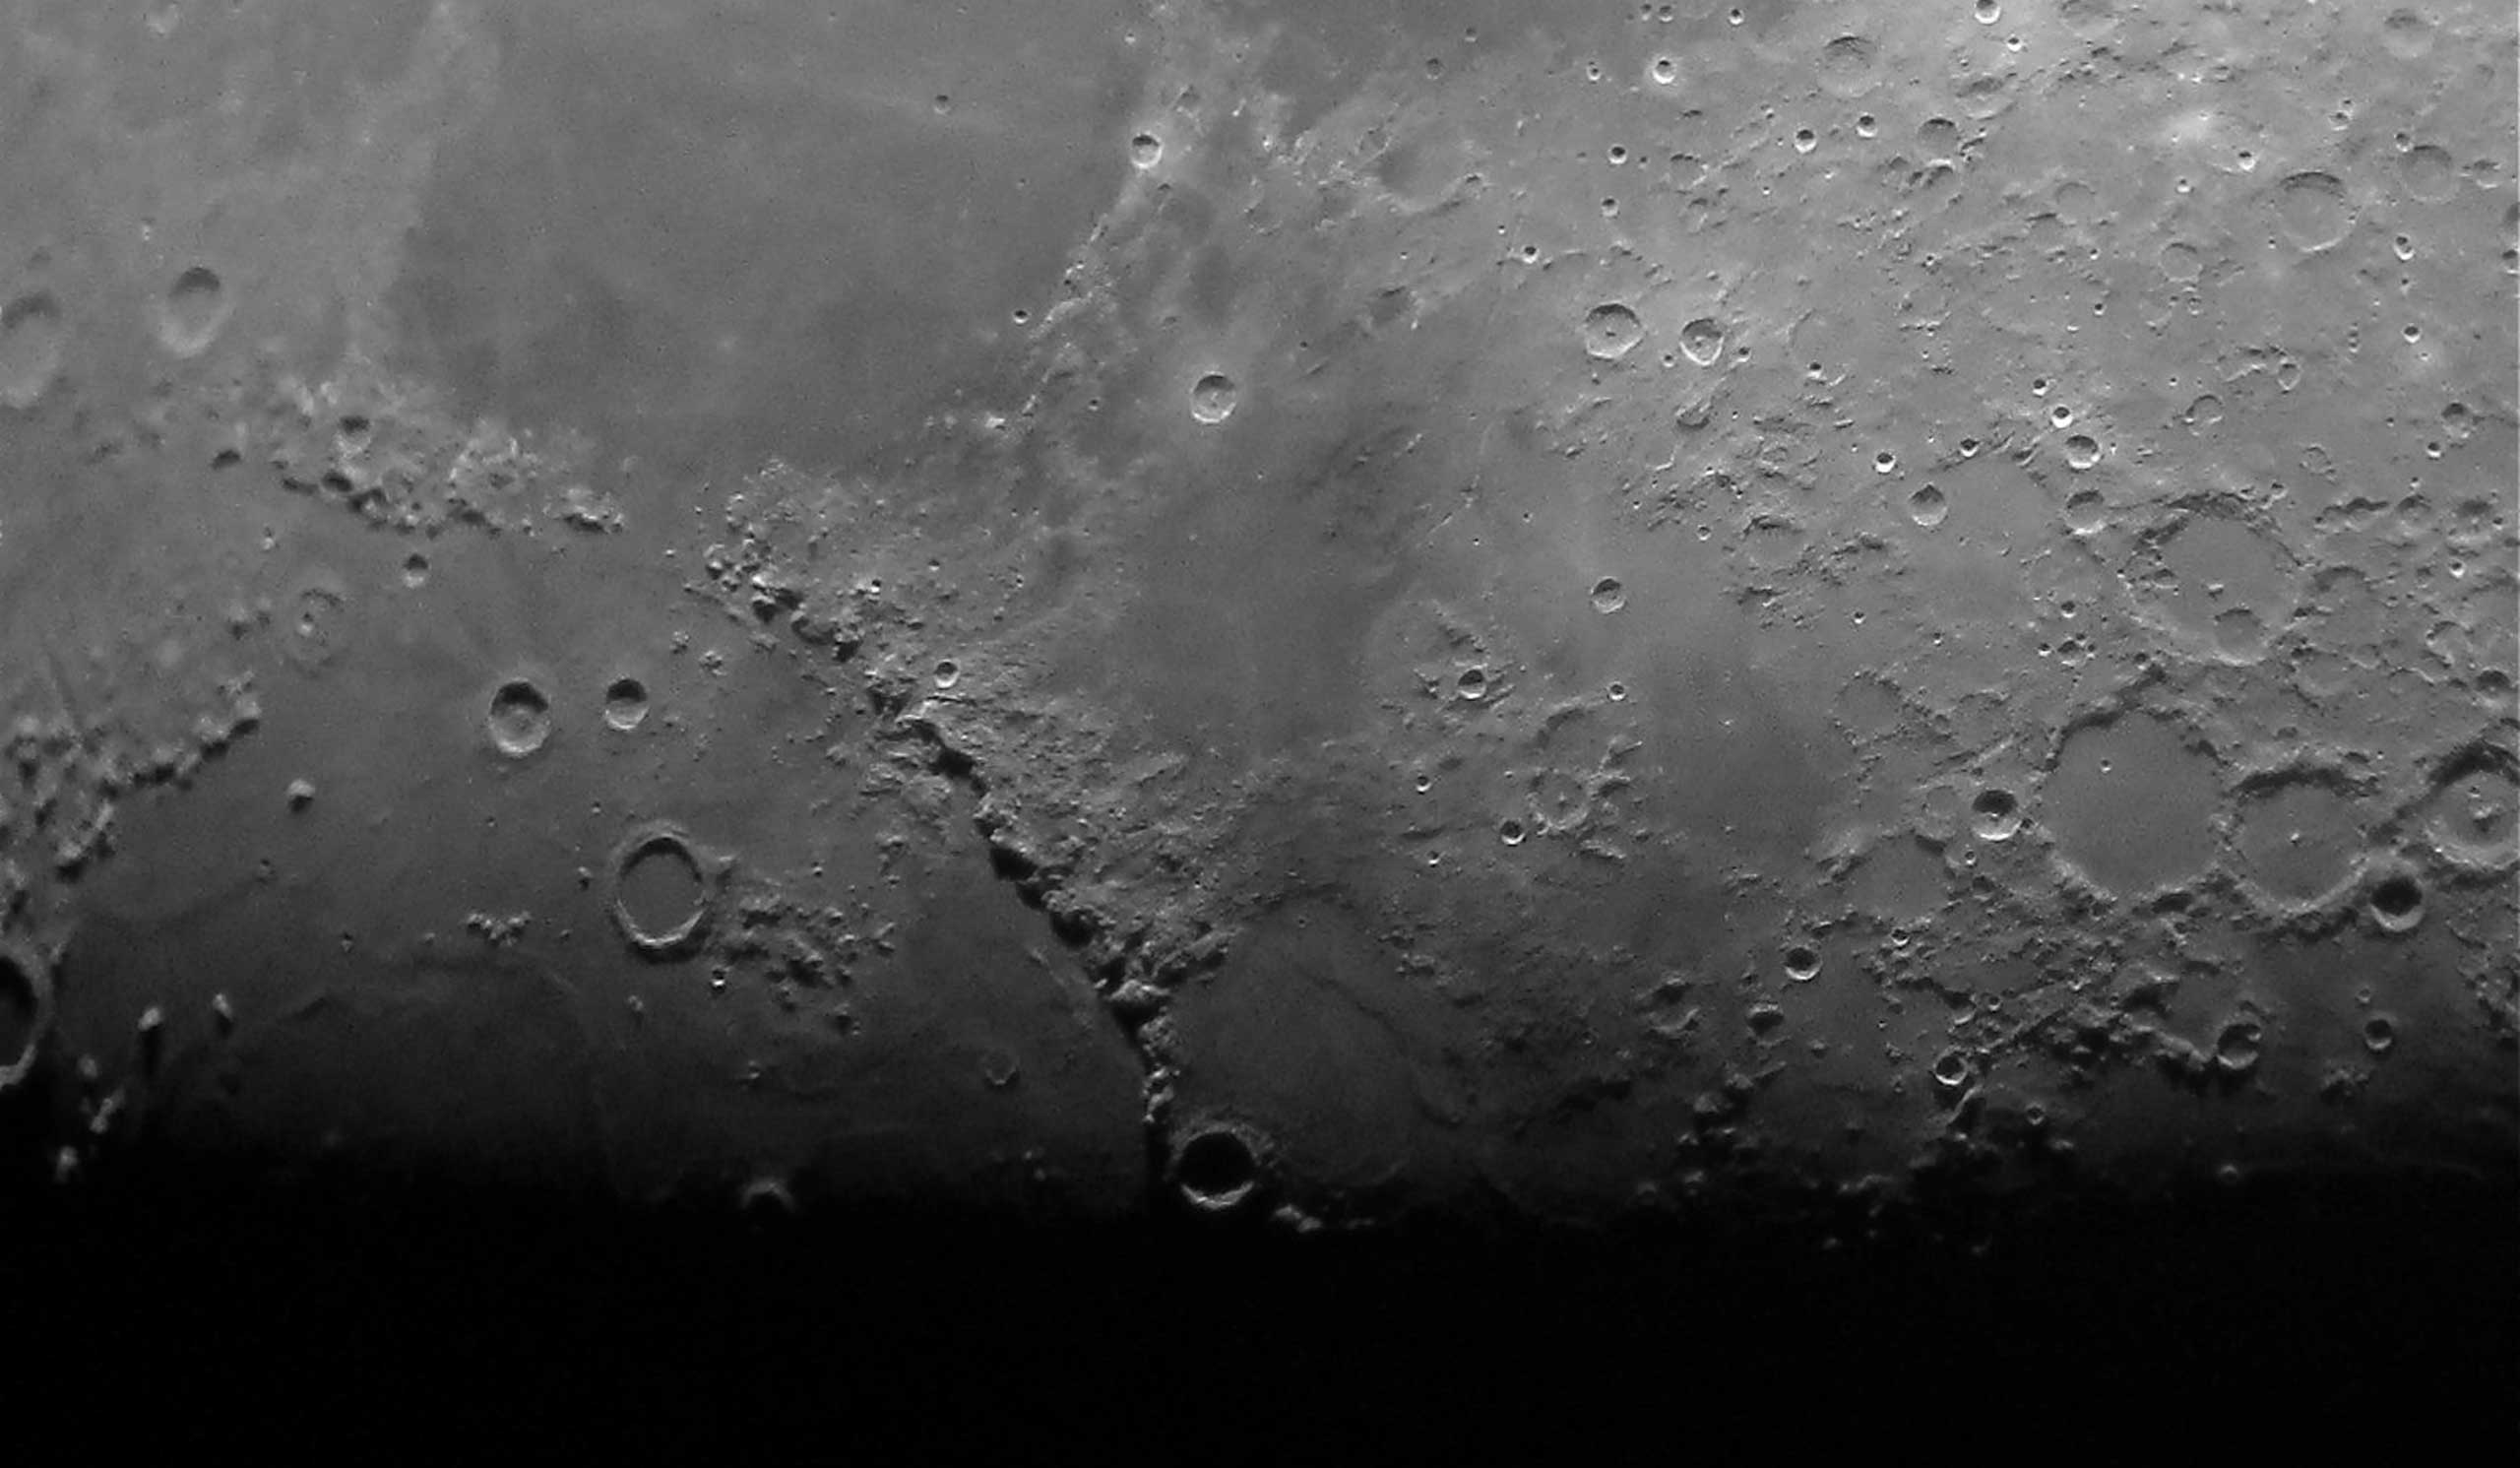 A beautifully sharp and artfully framed detail of the Moon. The terminator which separates the daytime and night-time parts of the Moon is aligned with the bottom edge of the photograph.  The Sun's light shines at a low angle onto the surface of the Moon just above this line, showing the contrast between smooth maria and rugged crater rims to the best advantage.